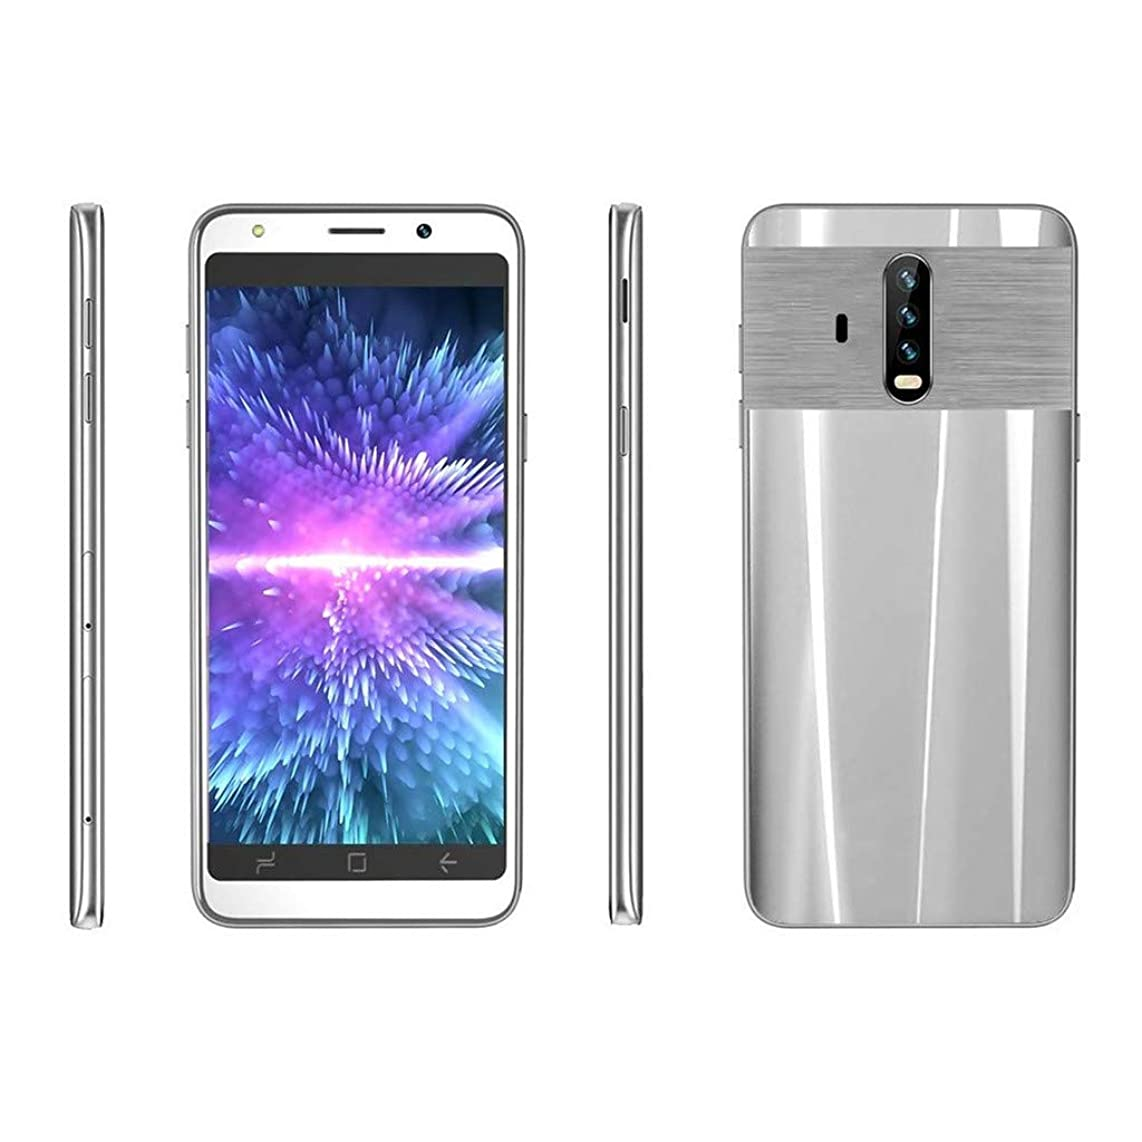 (Lowest Price Limited time Smartphone,QGhead New 5.0 inch Dual HD Camera Android 5.1 512M+4G GPS 3G Call Mobile PhoneUS US,Support up to 32GB TF Card,give 1x Earphone (Silver)